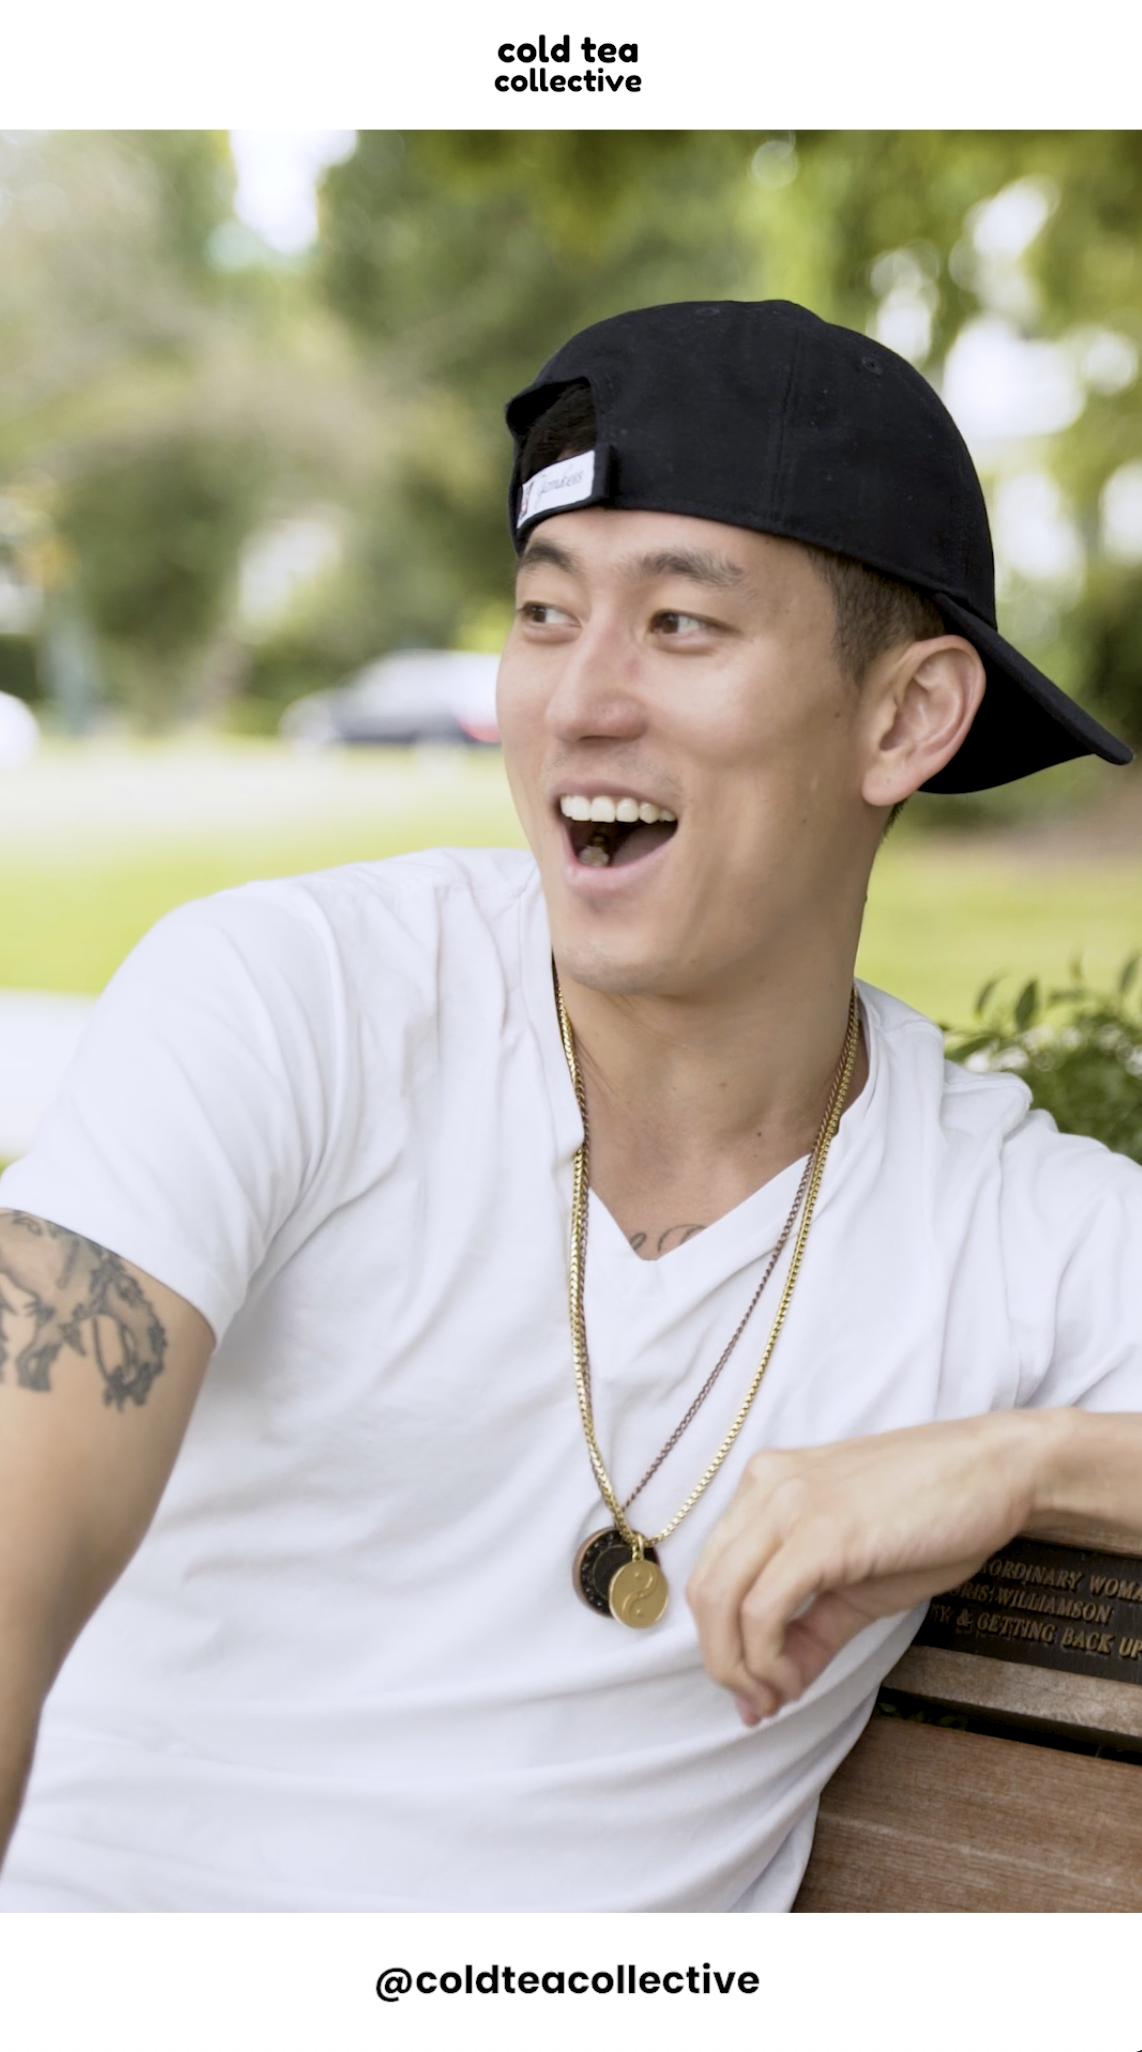 Jake Choi, Actor & LGBTQ2+ Activist - Produced and interviewed actor Jake Choi for Cold Tea Collective's Pride 2019 special